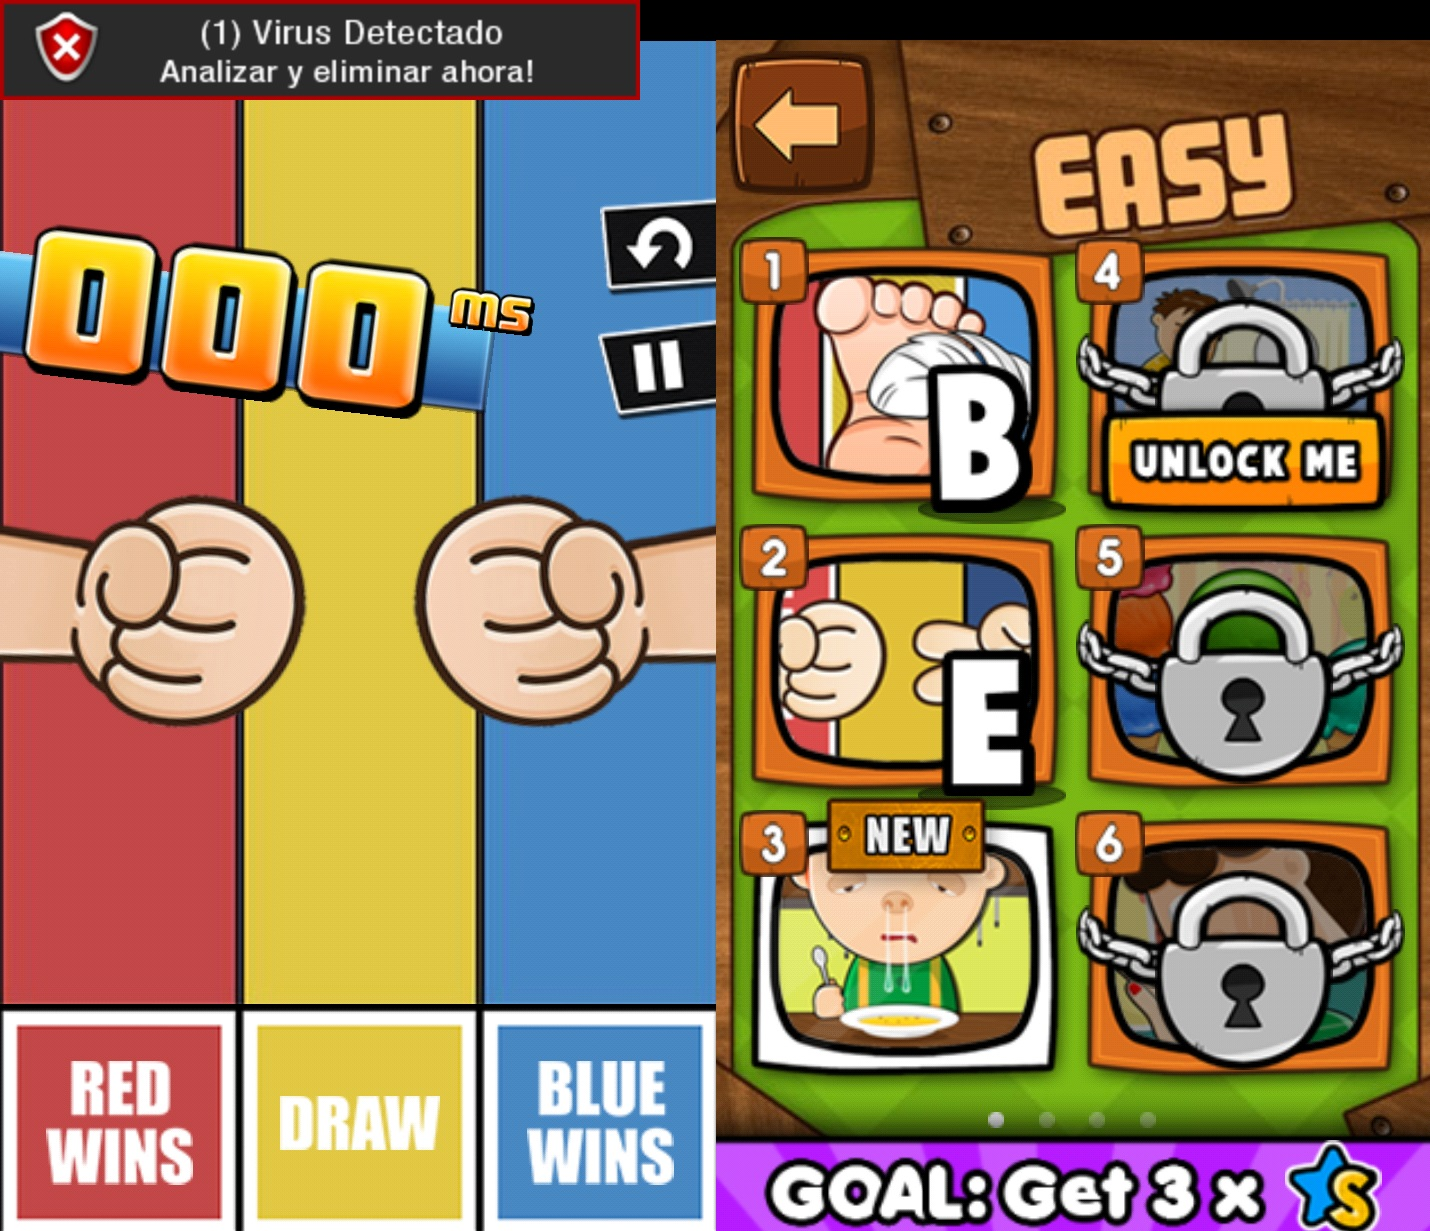 hardest game ever 2 android